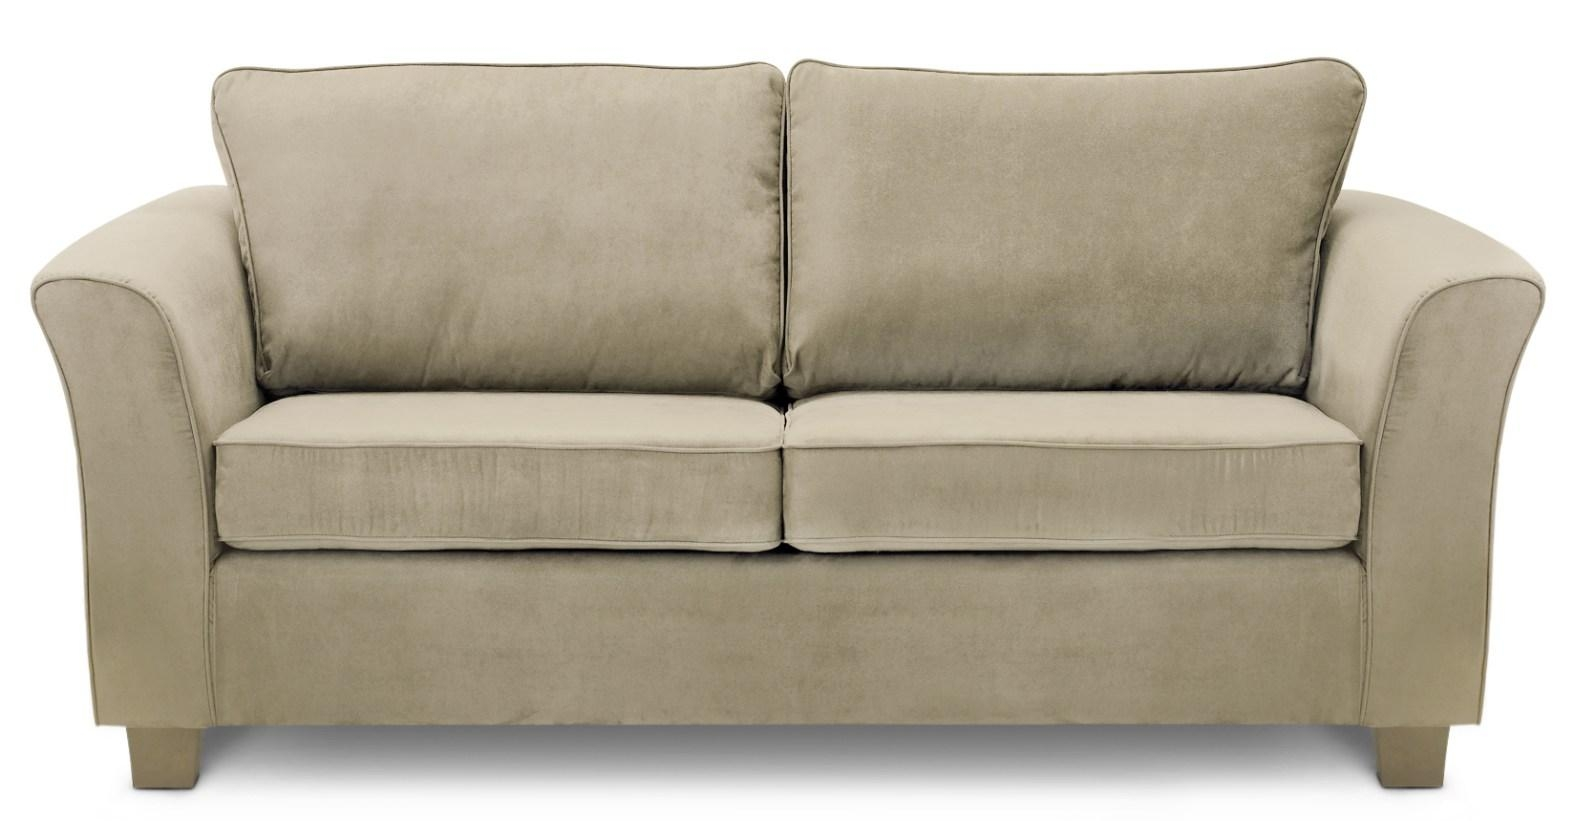 Sofa : Ikea Kivik Sofa Series Review Comfort Works Blog & Design In Lillberg Sofa Covers (View 2 of 20)